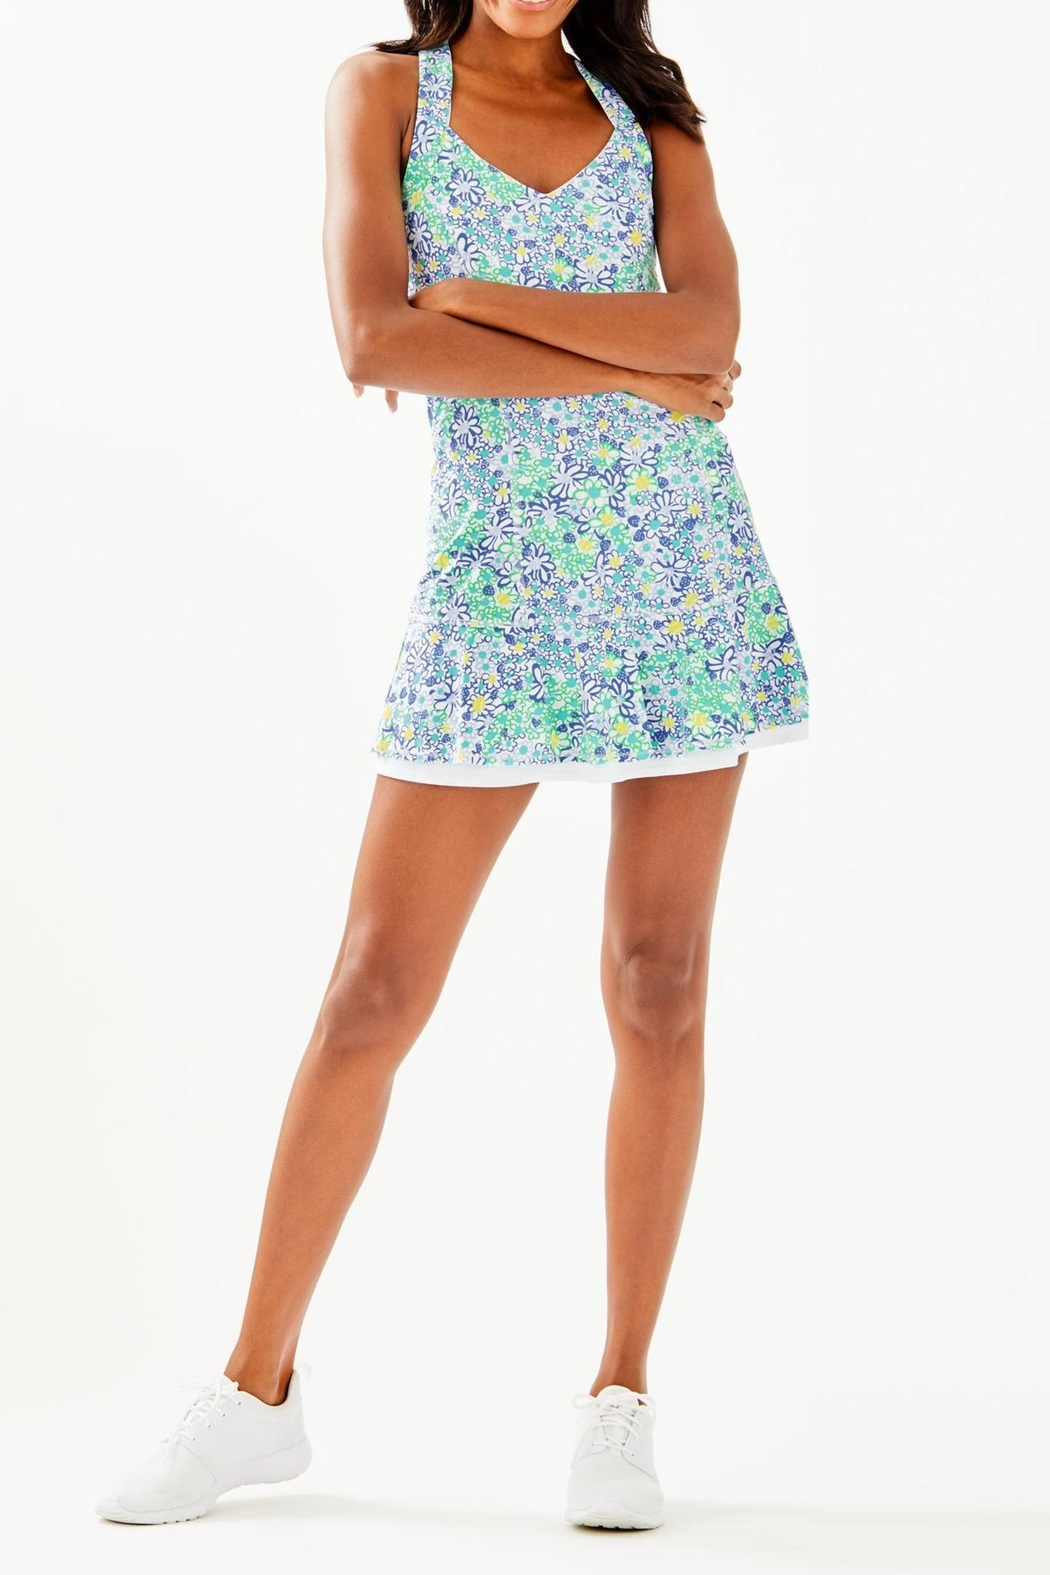 Lilly Pulitzer Sean Tennis Dress - Back Cropped Image